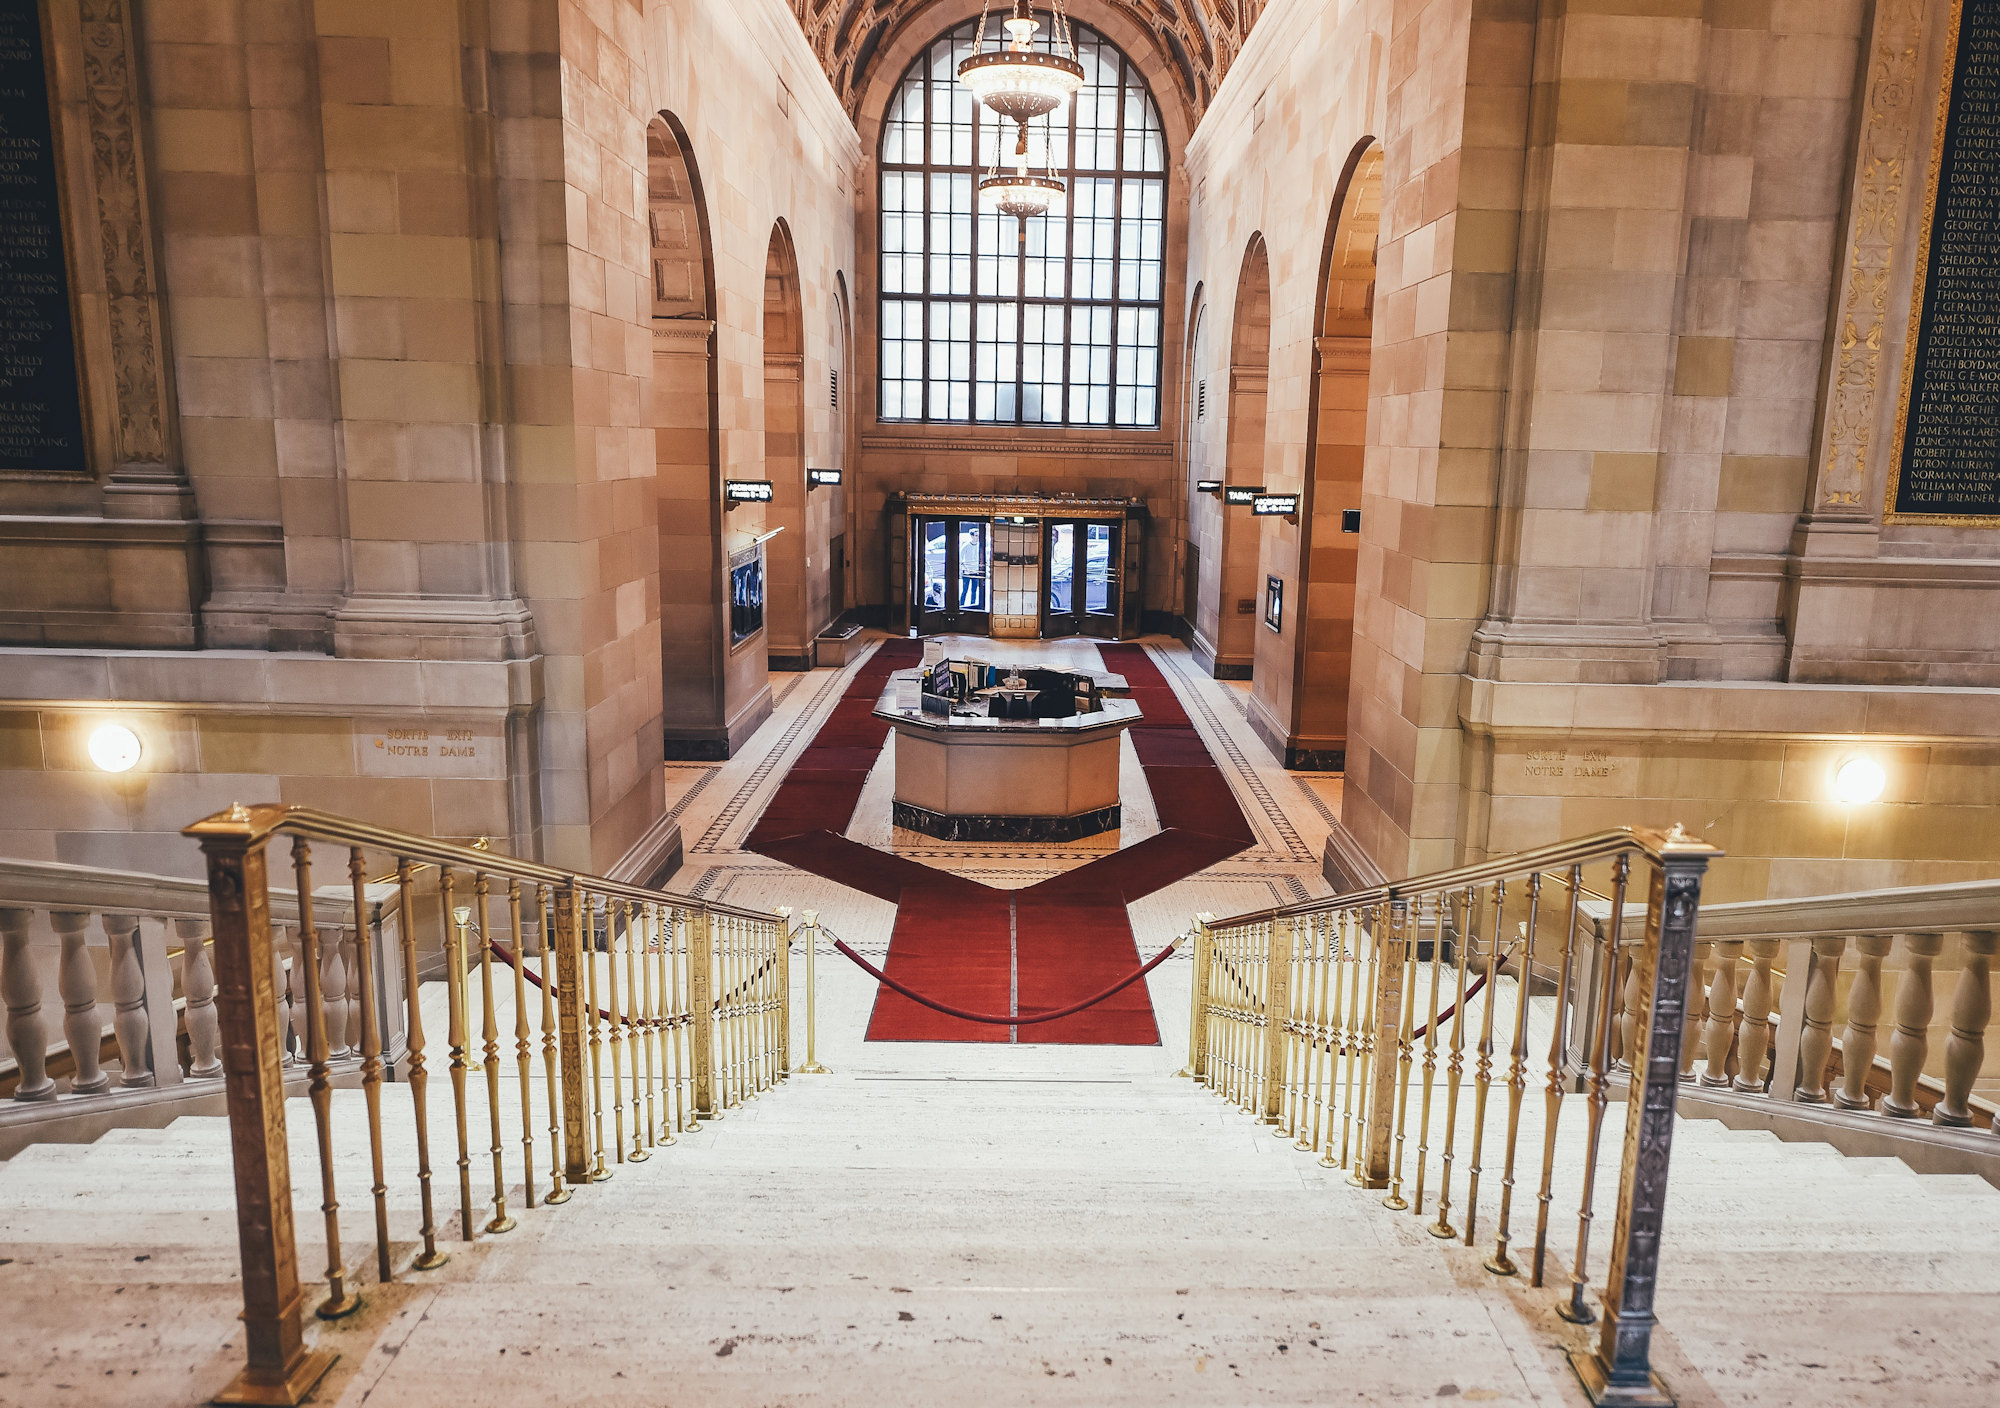 View down the stairs of a fancy building, ending in a velvet rope